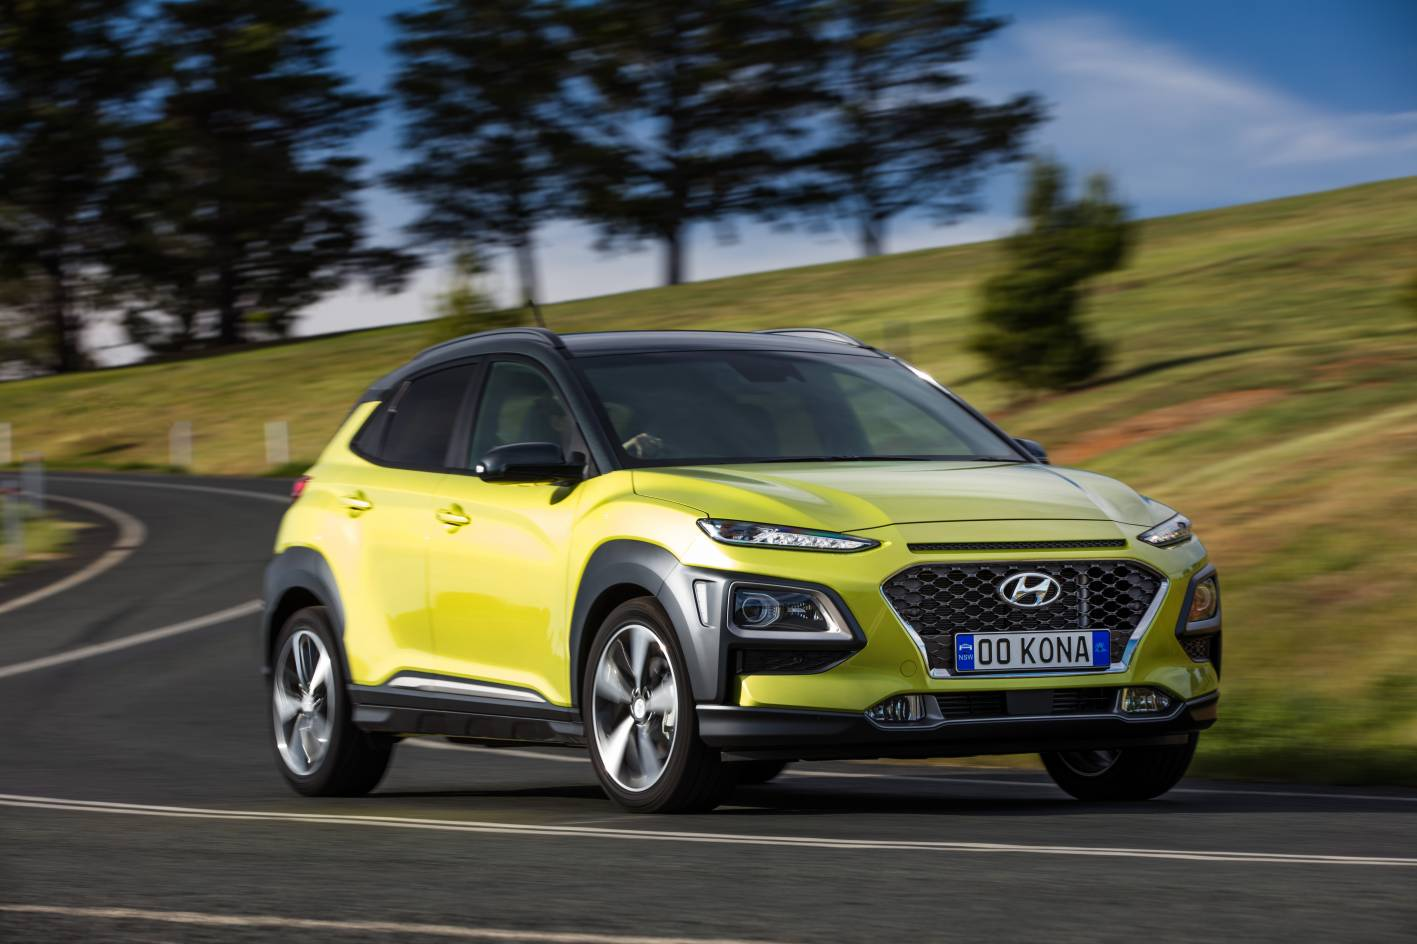 Hyundai Kona Highlander features powerful 1.6 turbo petrol engine mated to a dual-clutch - but is it suitable for towing?